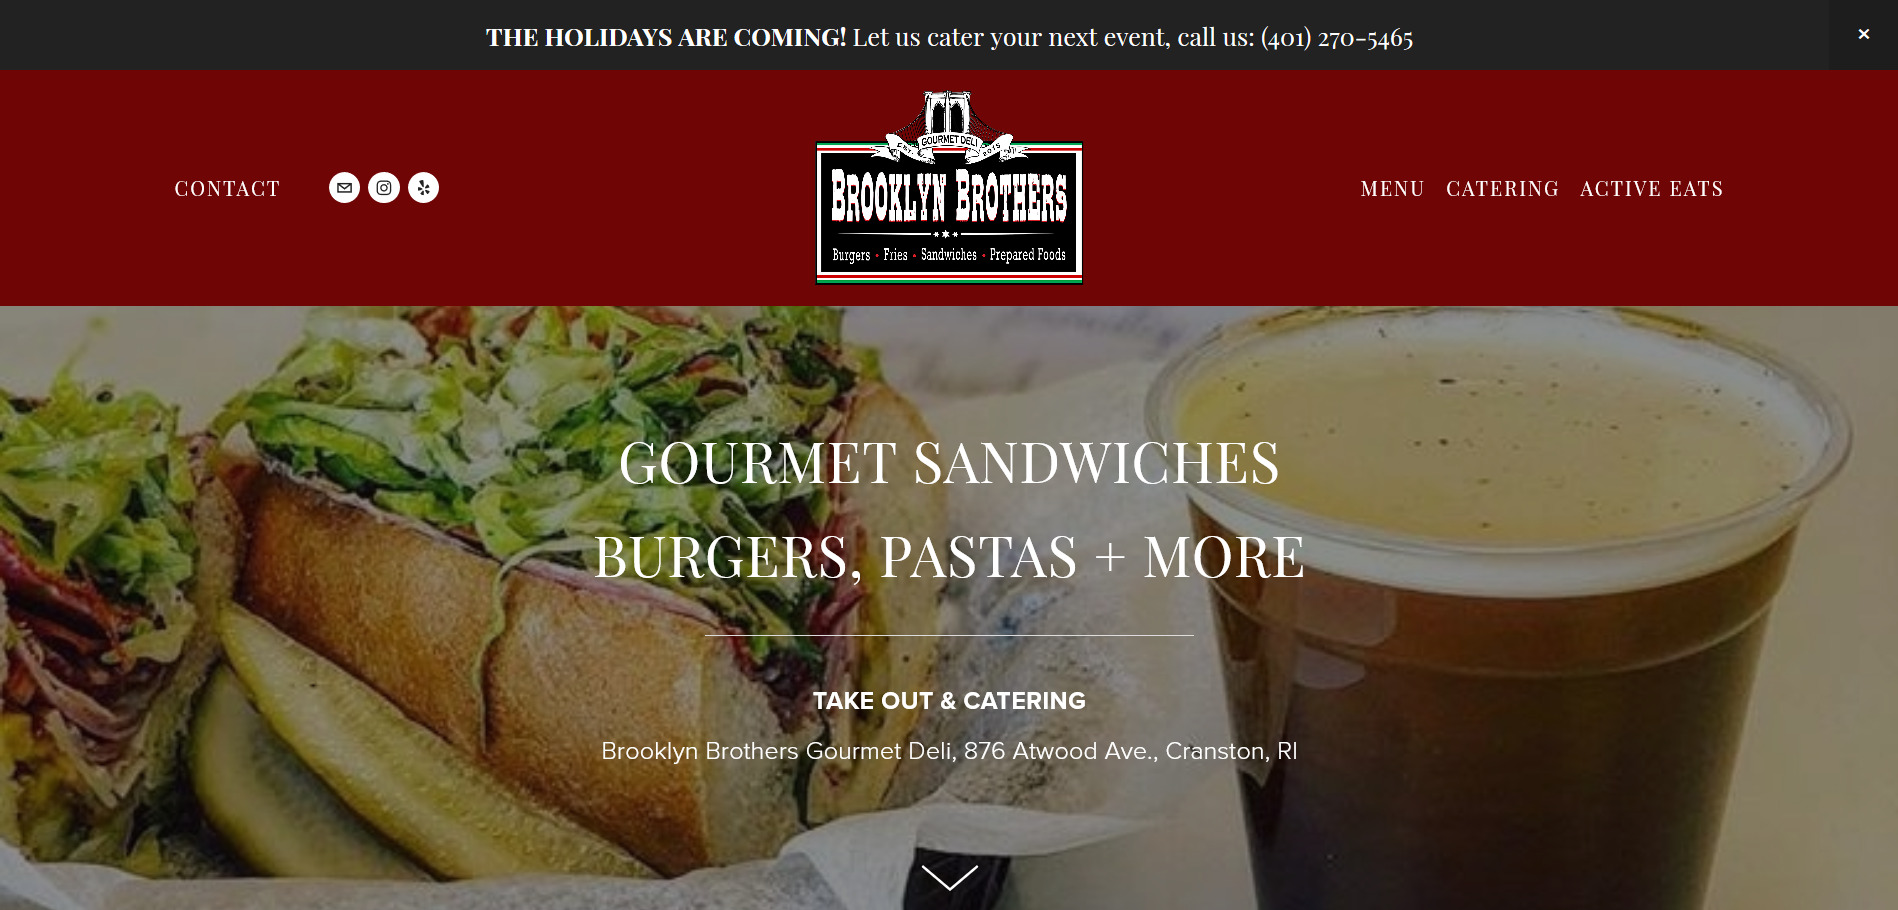 Brooklyn Brothers Gourmet Deli